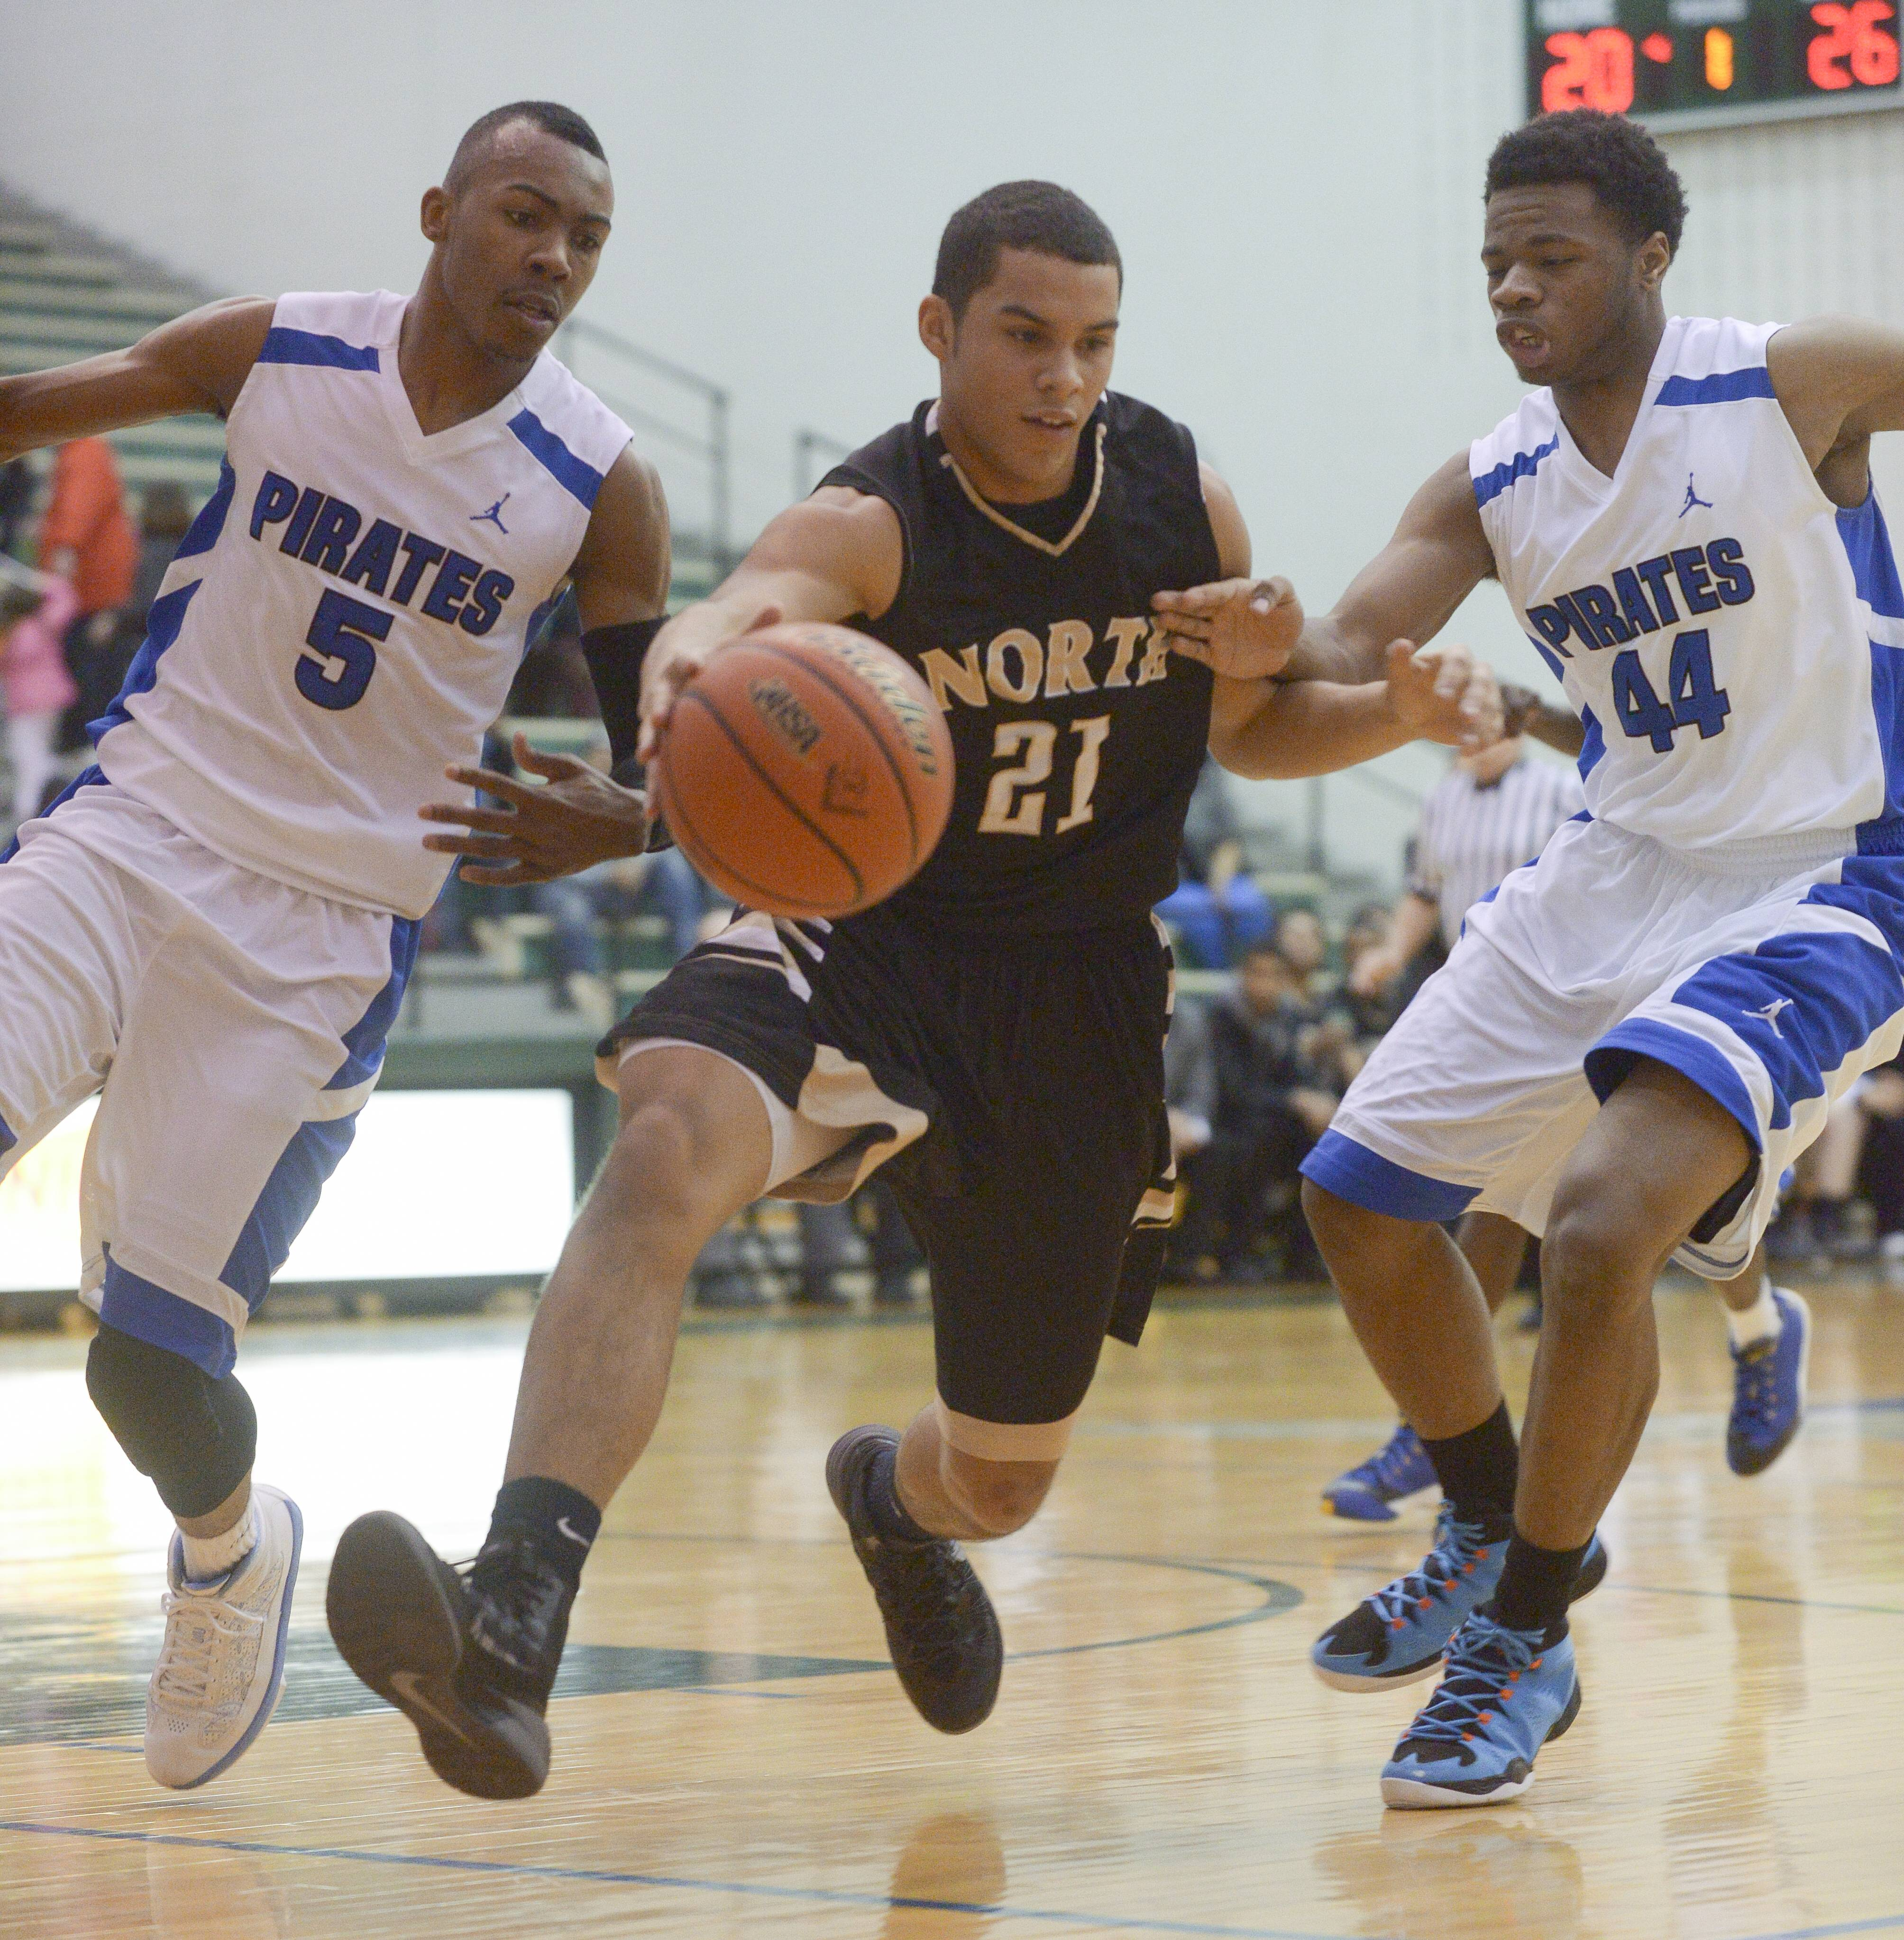 Glenbard North's Kendall Holbert drives the ball through Proviso East's Jevon Carter and Josh Smith during the Bartlett 4A sectional semifinal, Wednesday.